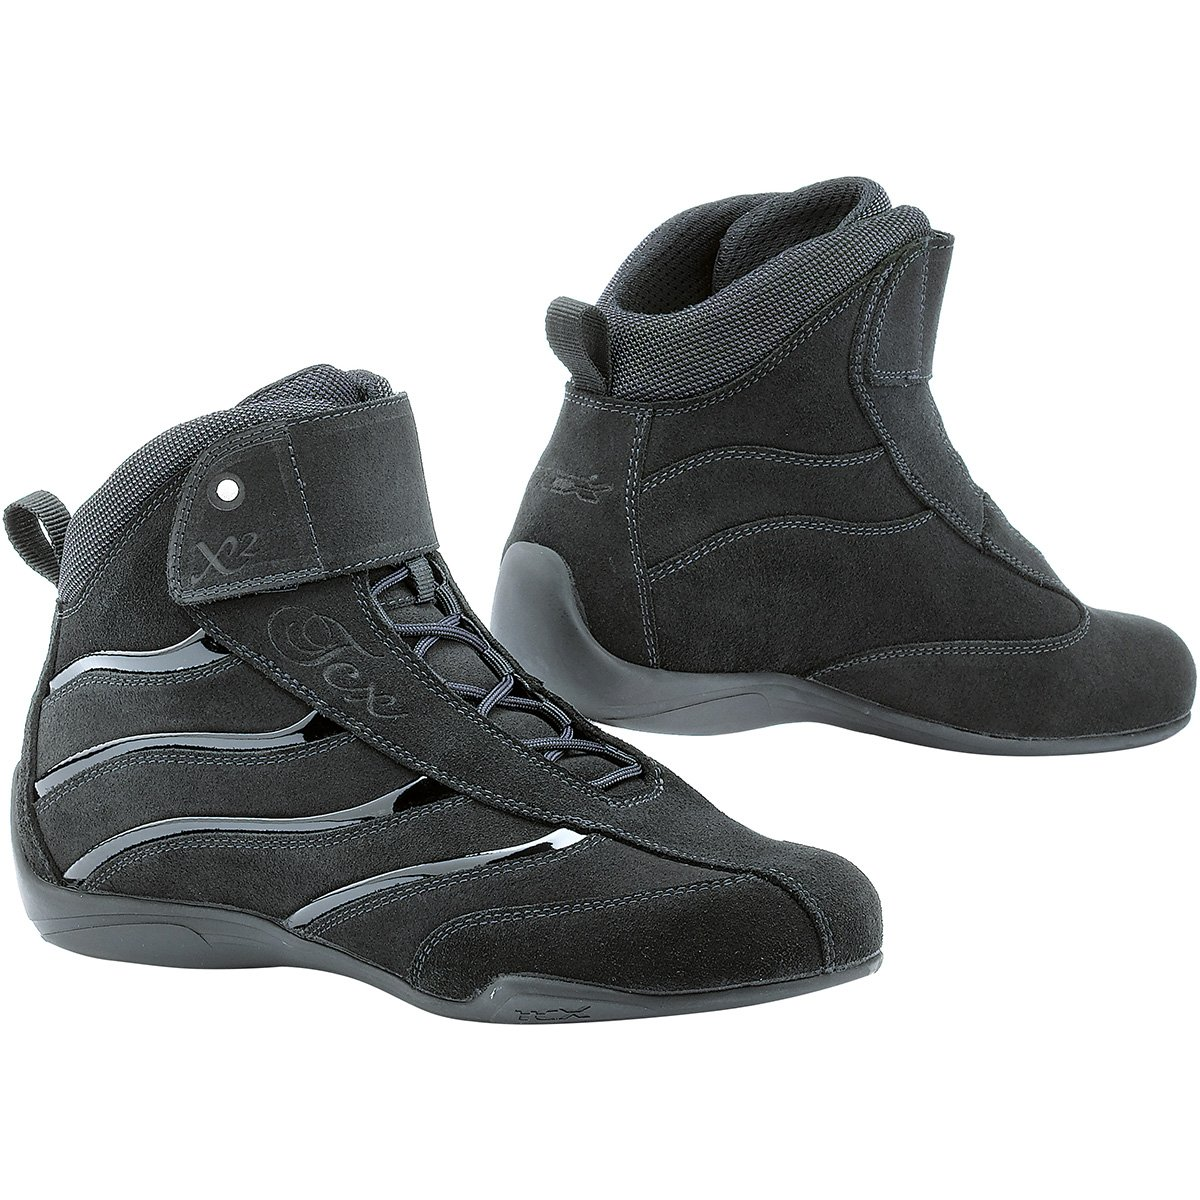 TCX X-Square Lady Women's Street Motorcycle Boots - Black / 36